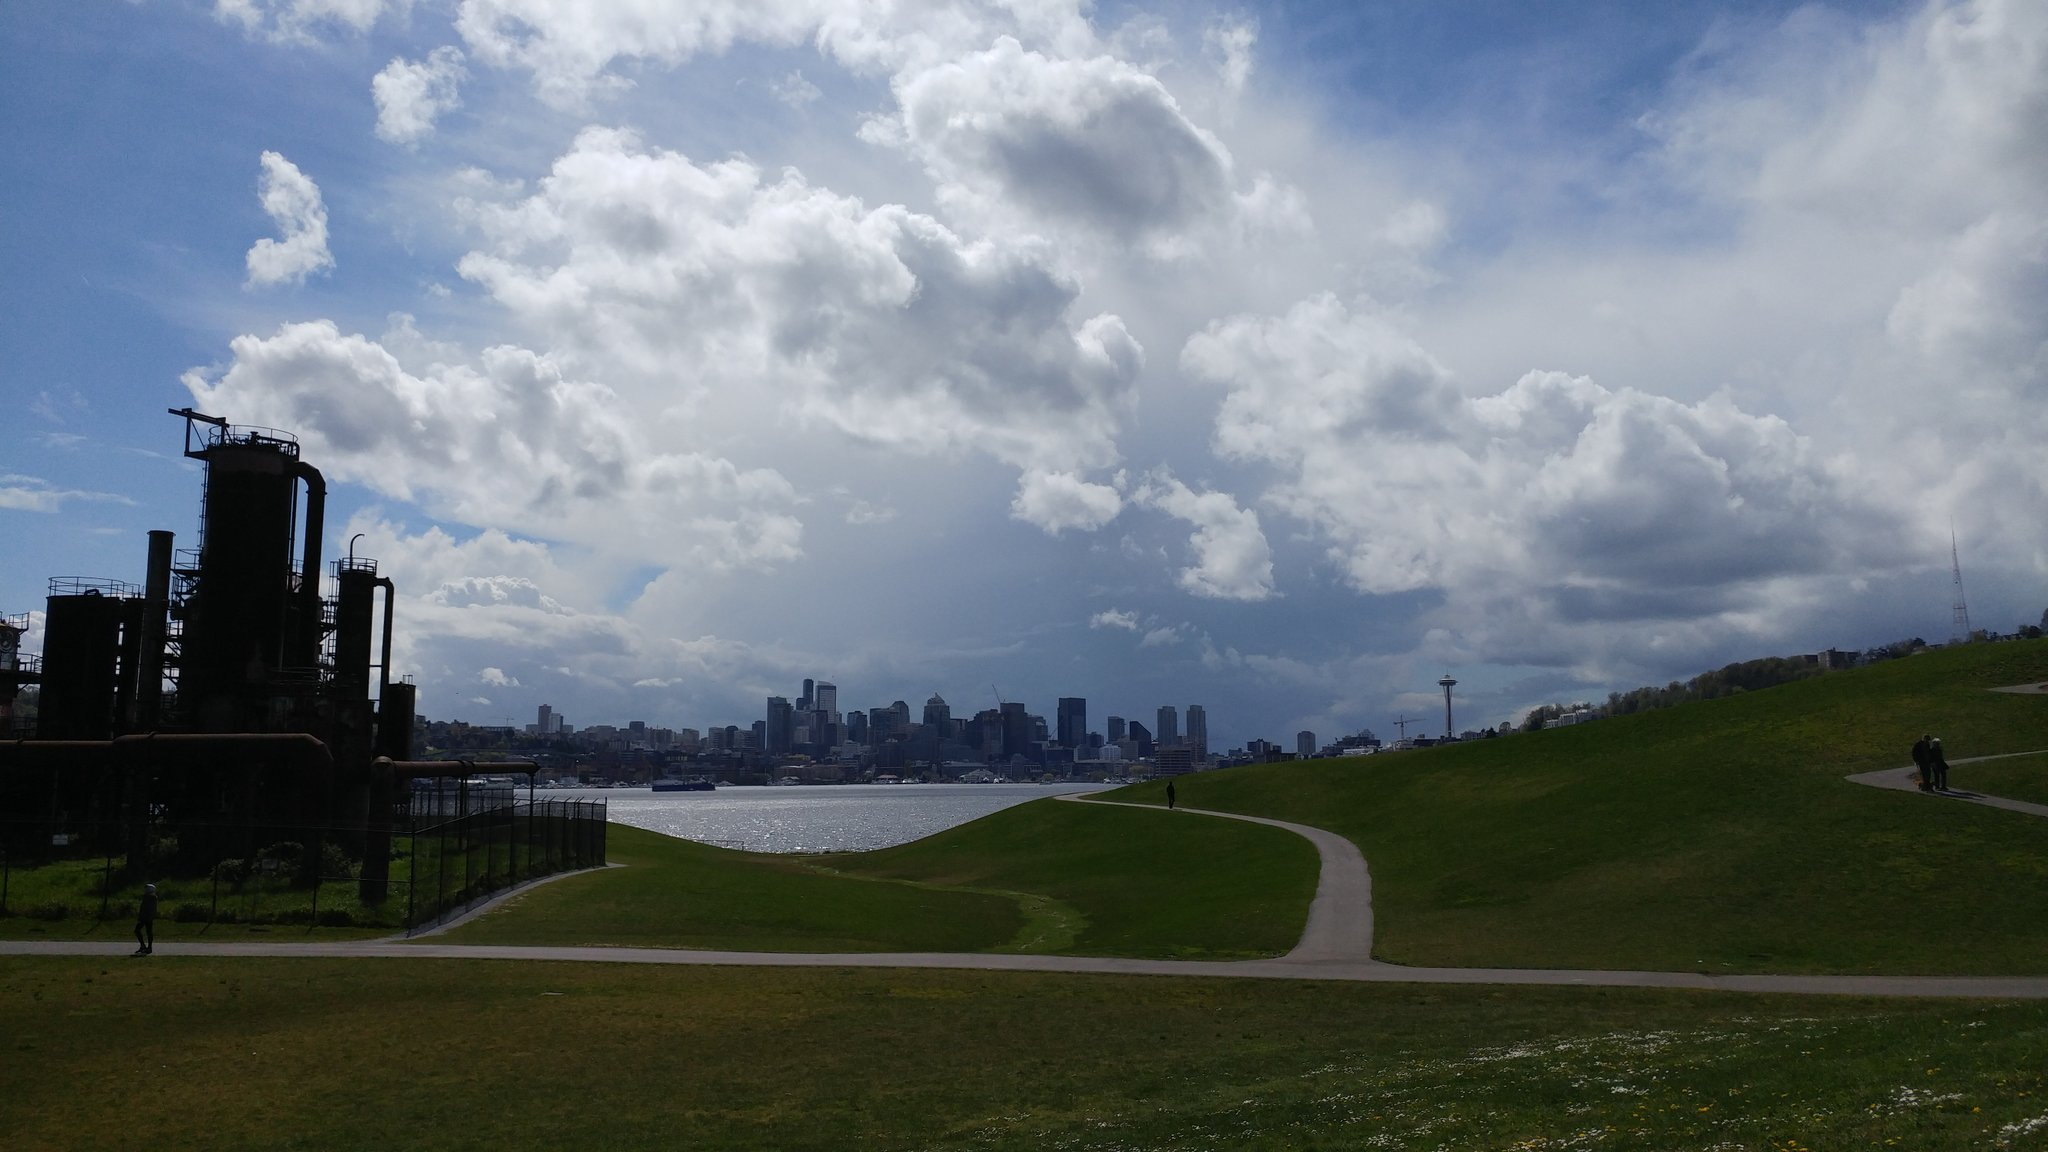 Storm clouds are seen over Seattle from Gas Works Park, Tuesday, April 18, 2017. (Photo: Annana/Twitter)